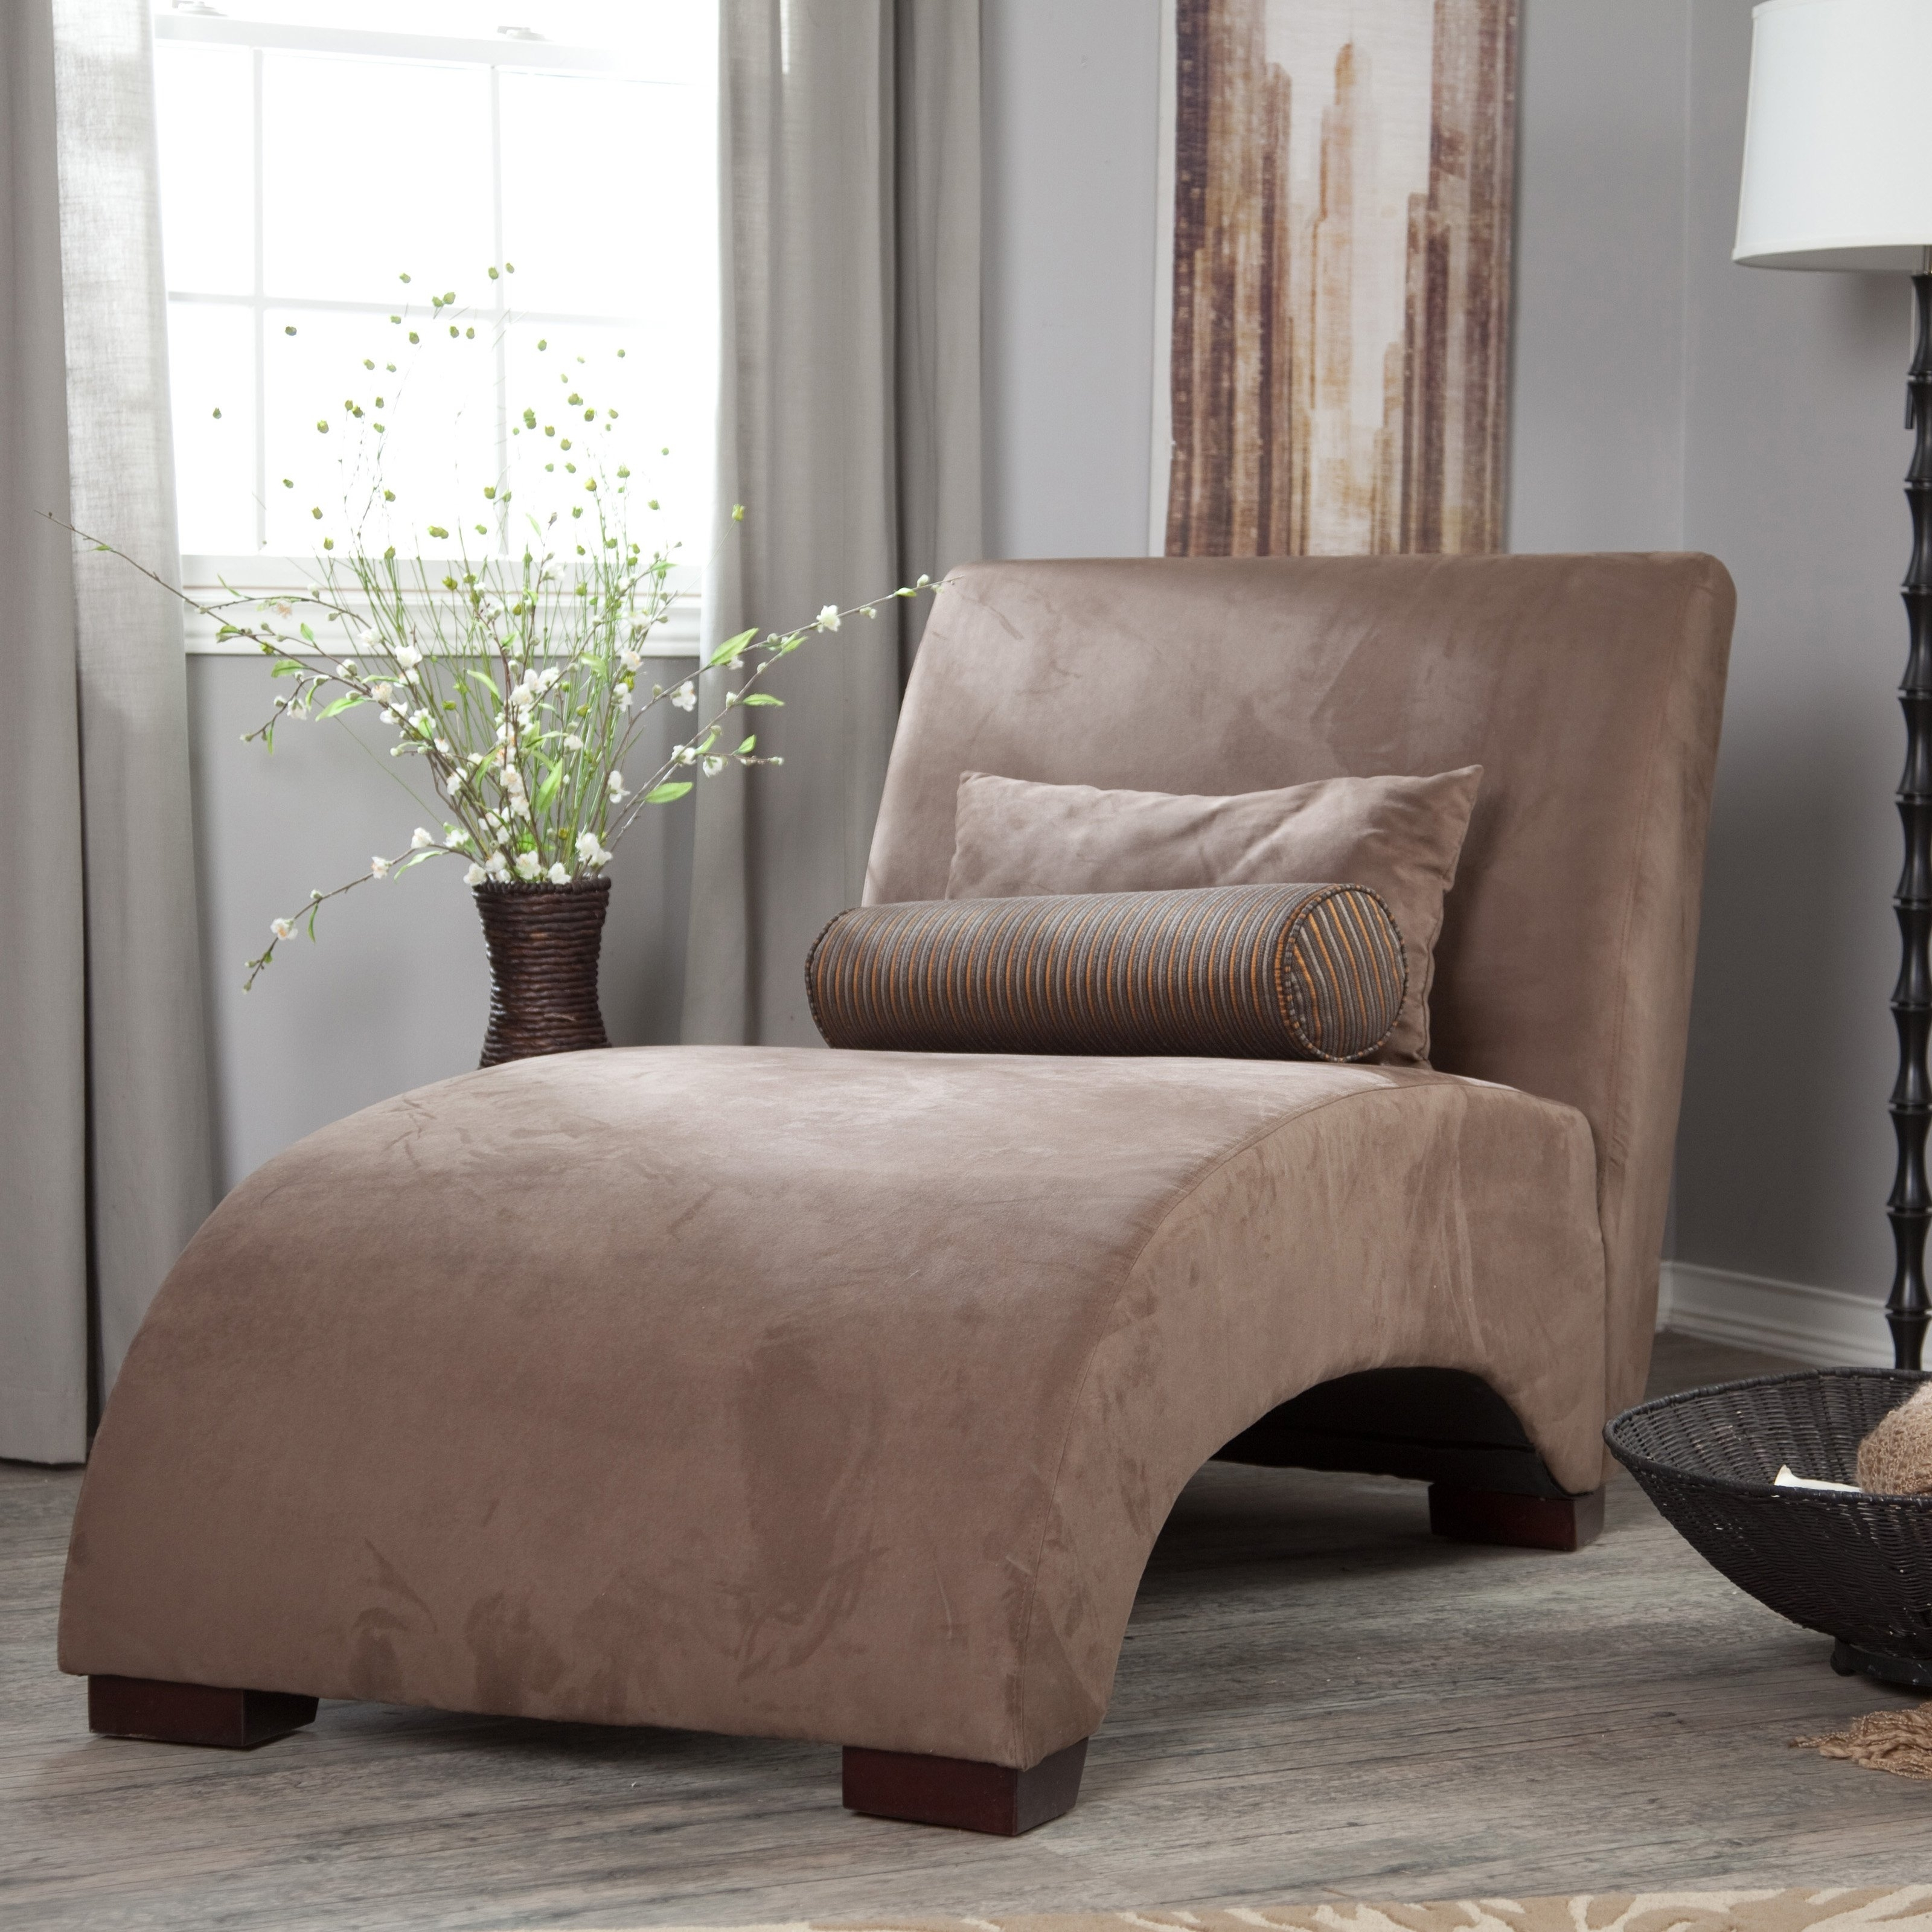 Small Chaise Lounge Chairs For Bedroom Inside Most Up To Date Small Chaise Lounge Chair For Room Brilliant Convertible Living (View 4 of 15)